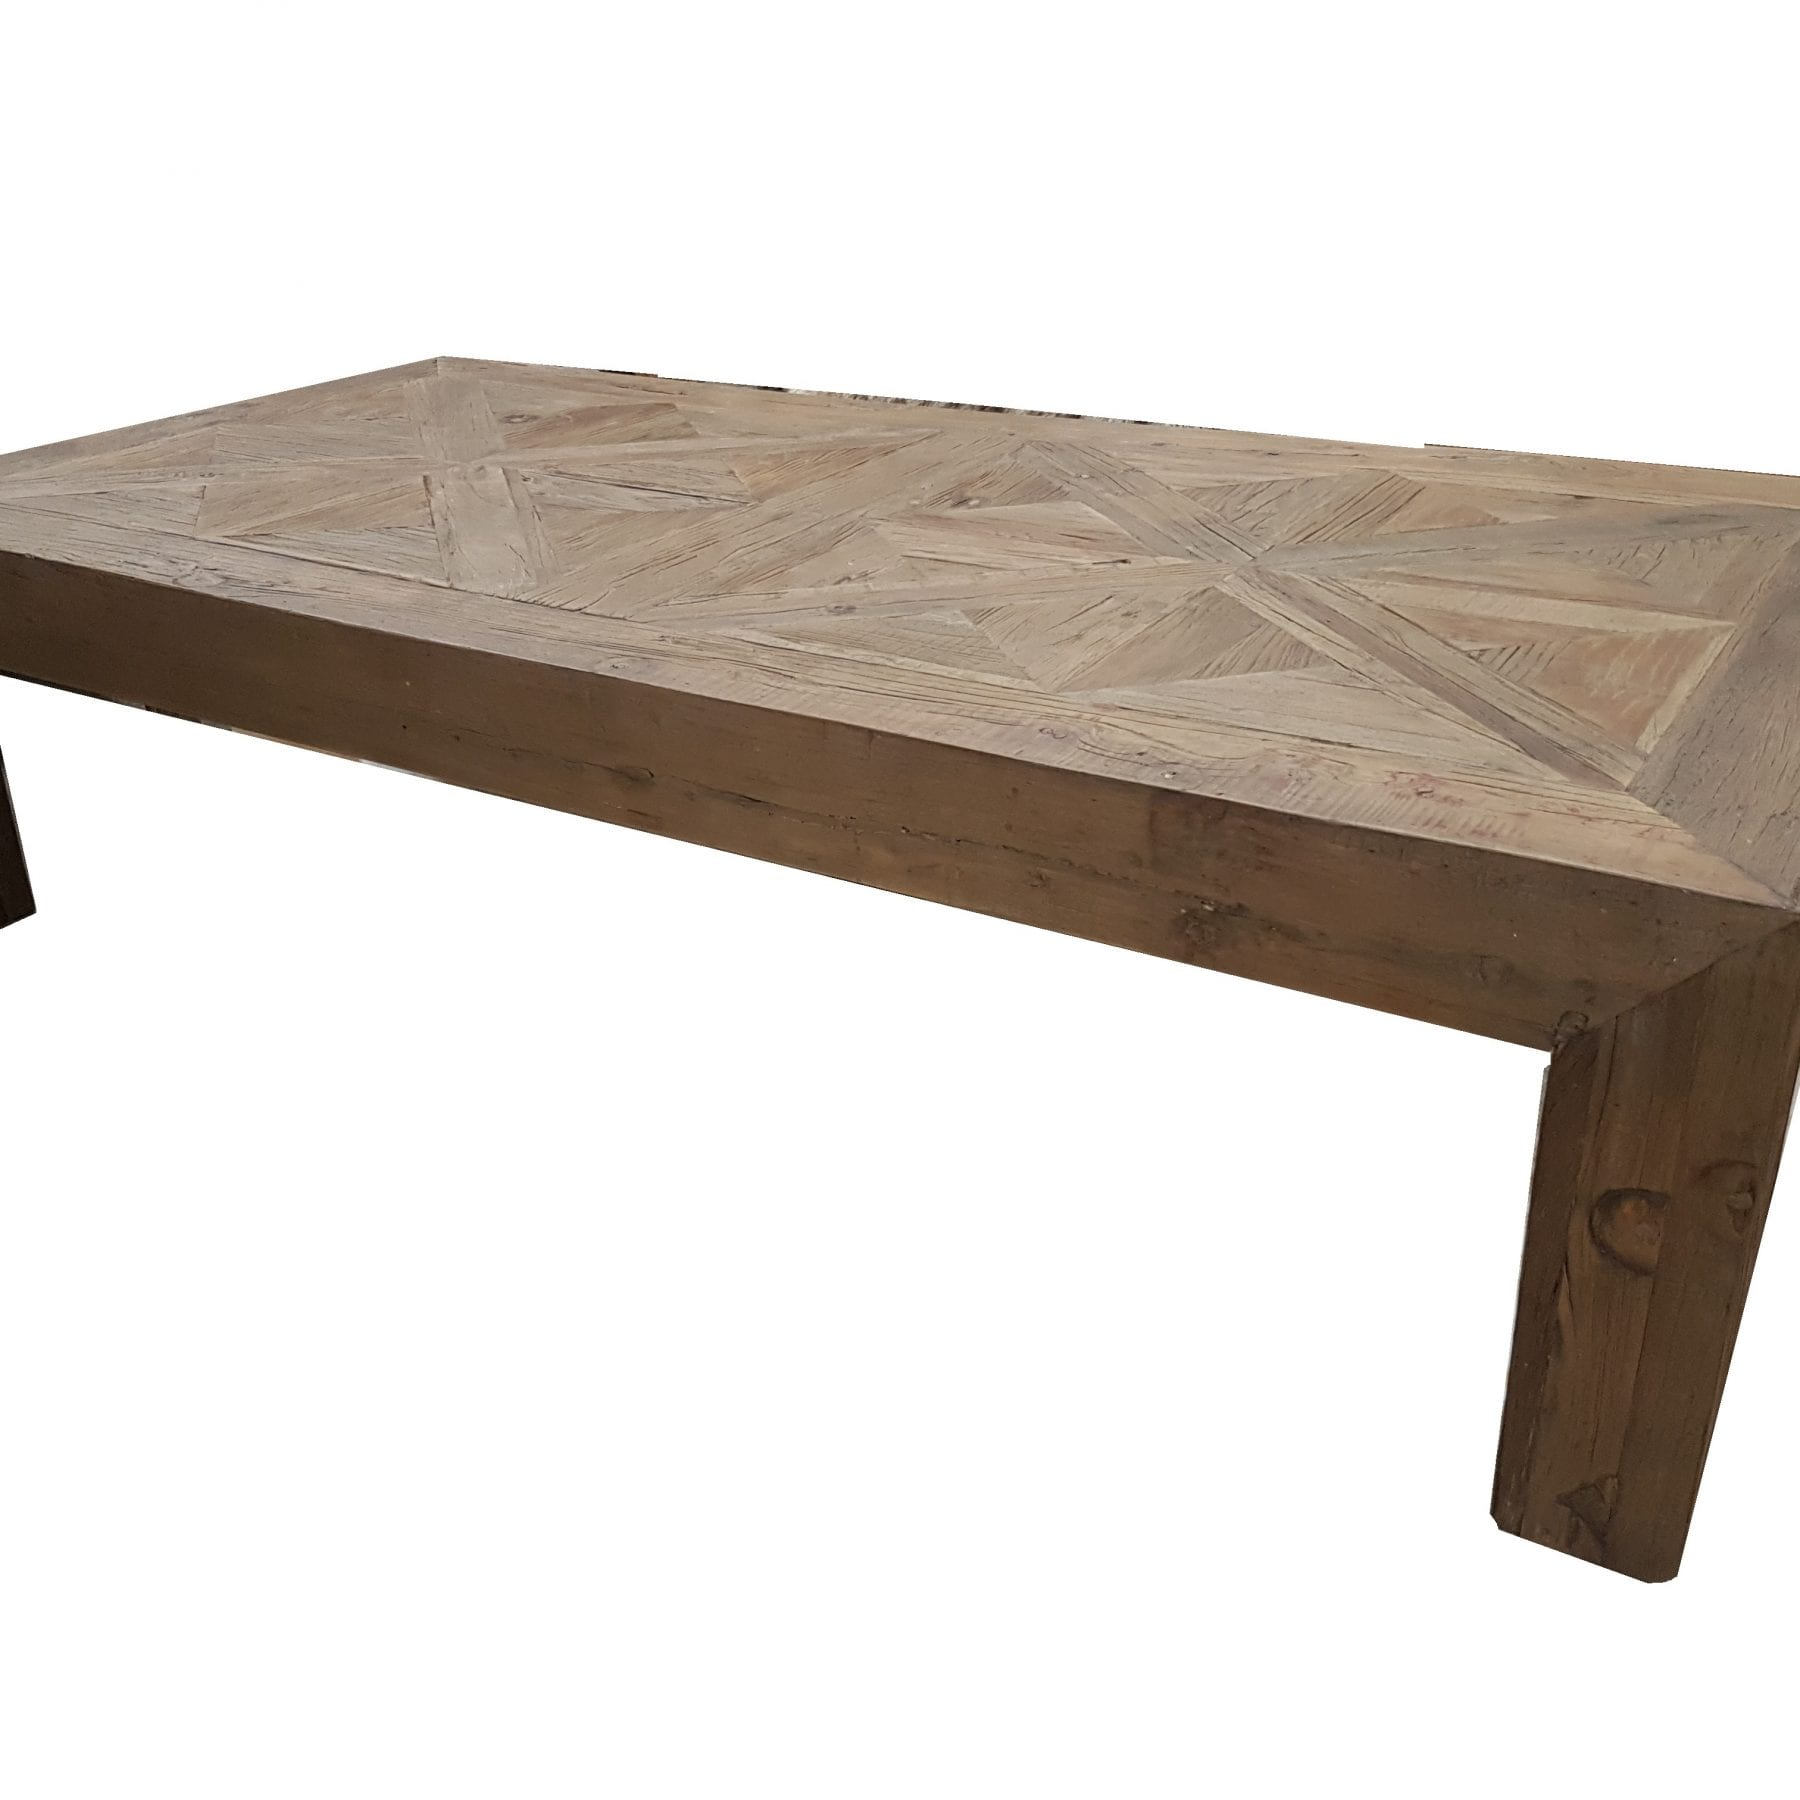 Parquet Elm Coffee Table